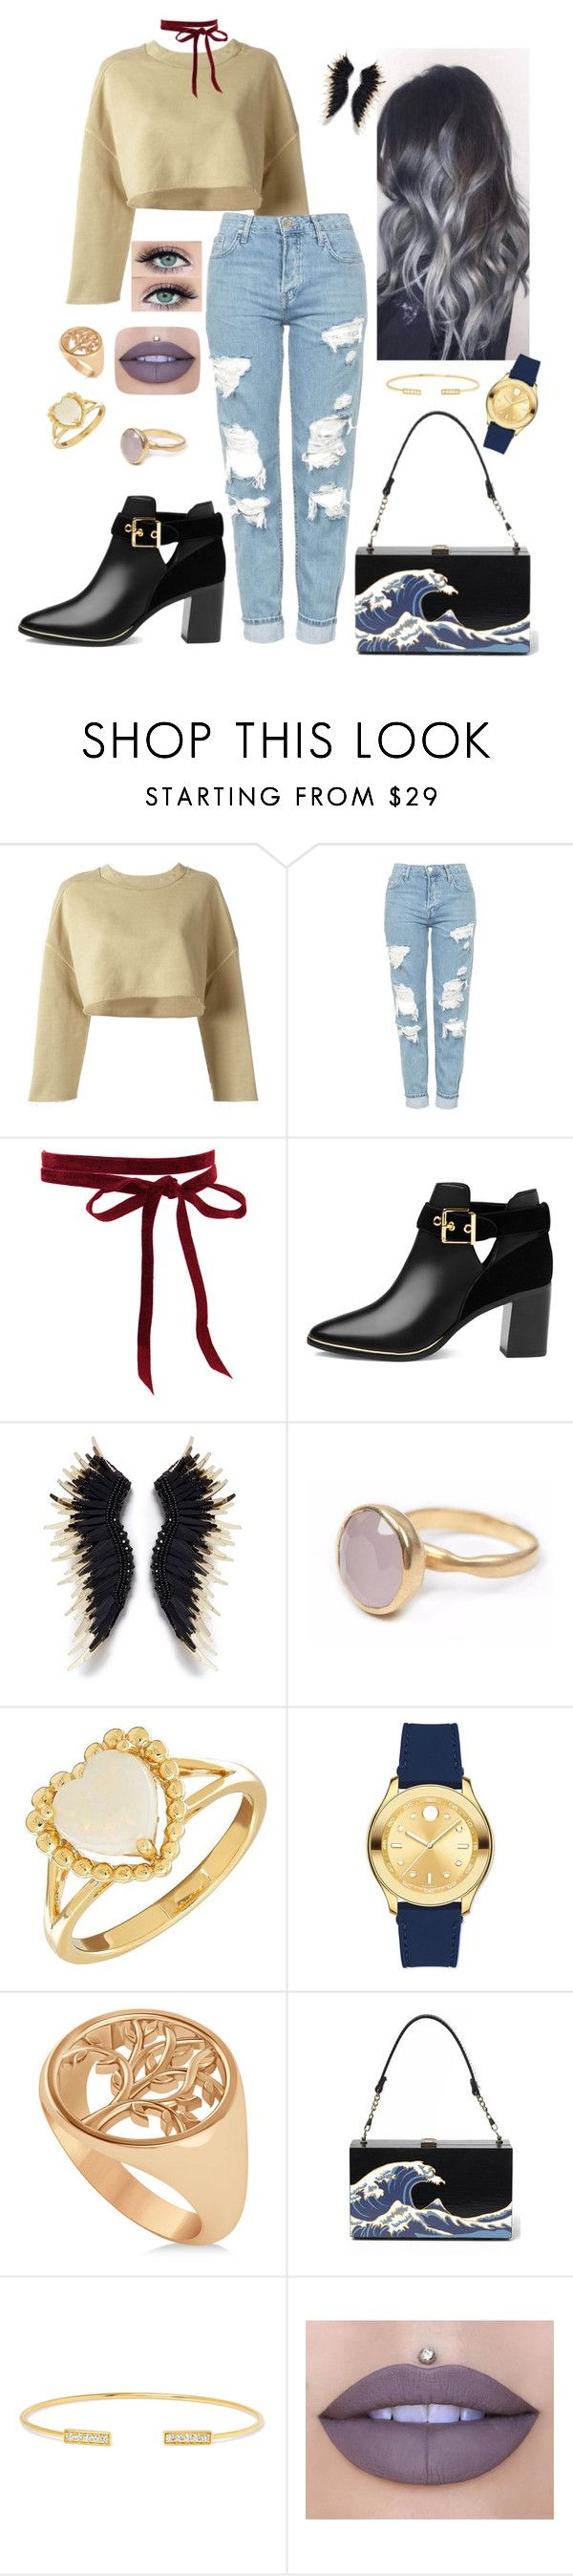 """Sem título #1141"" by anaritaferreira on Polyvore featuring moda, adidas Originals, Topshop, Ted Baker, Bohemia, Lord & Taylor, Movado, Allurez, Jemma Wynne e Jeffree Star"